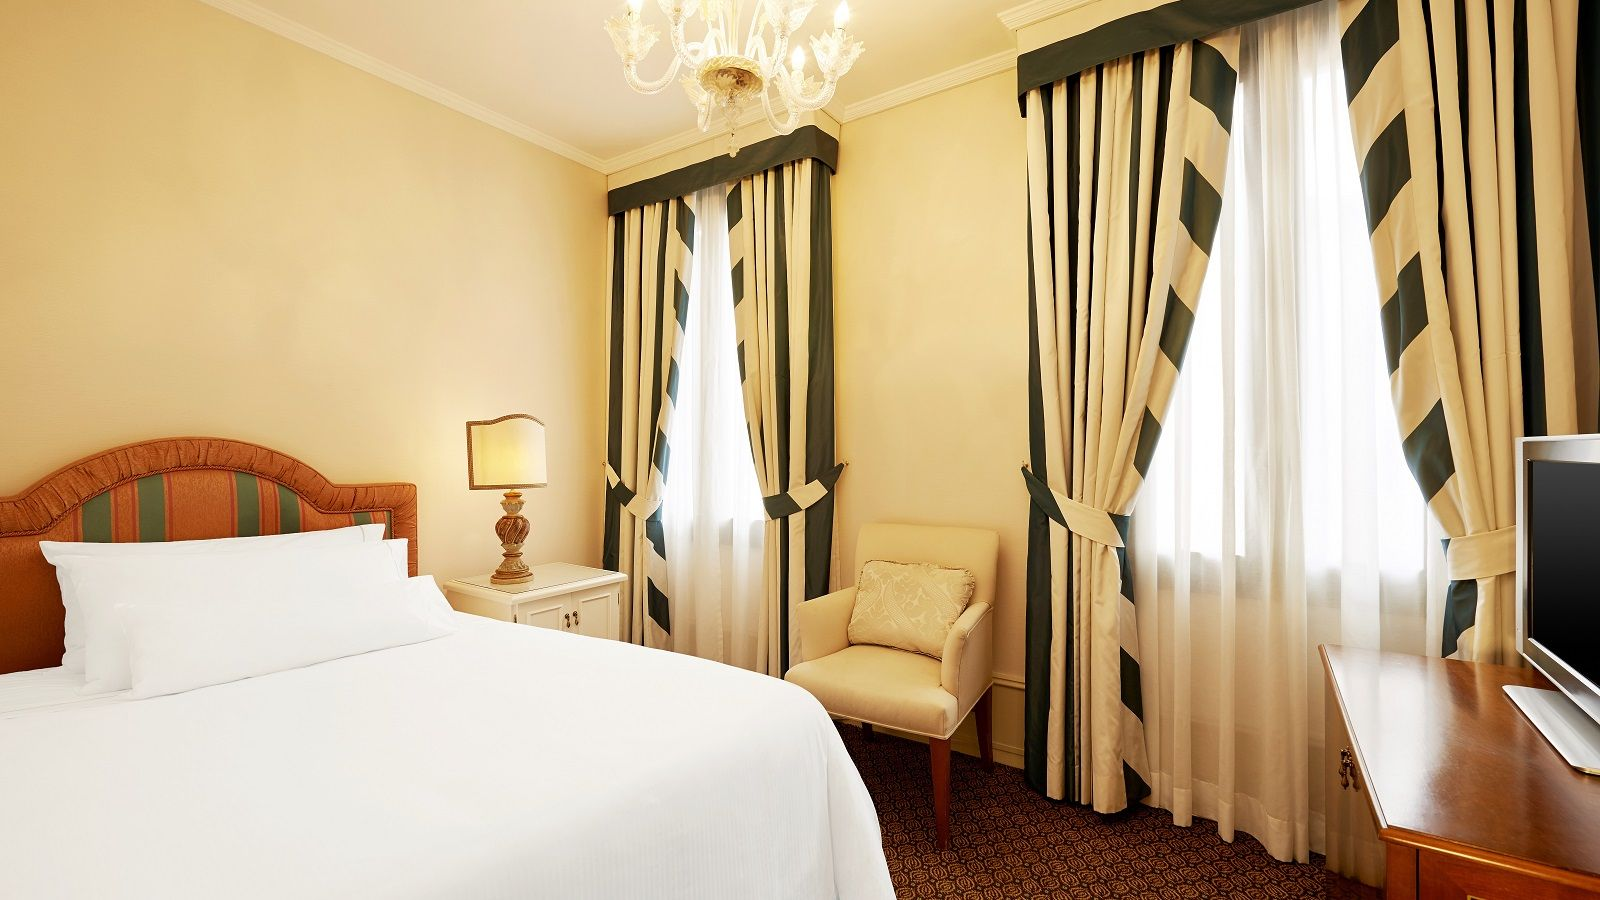 Image of the Classic Single Room at The Westin Europa & Regina, Venice